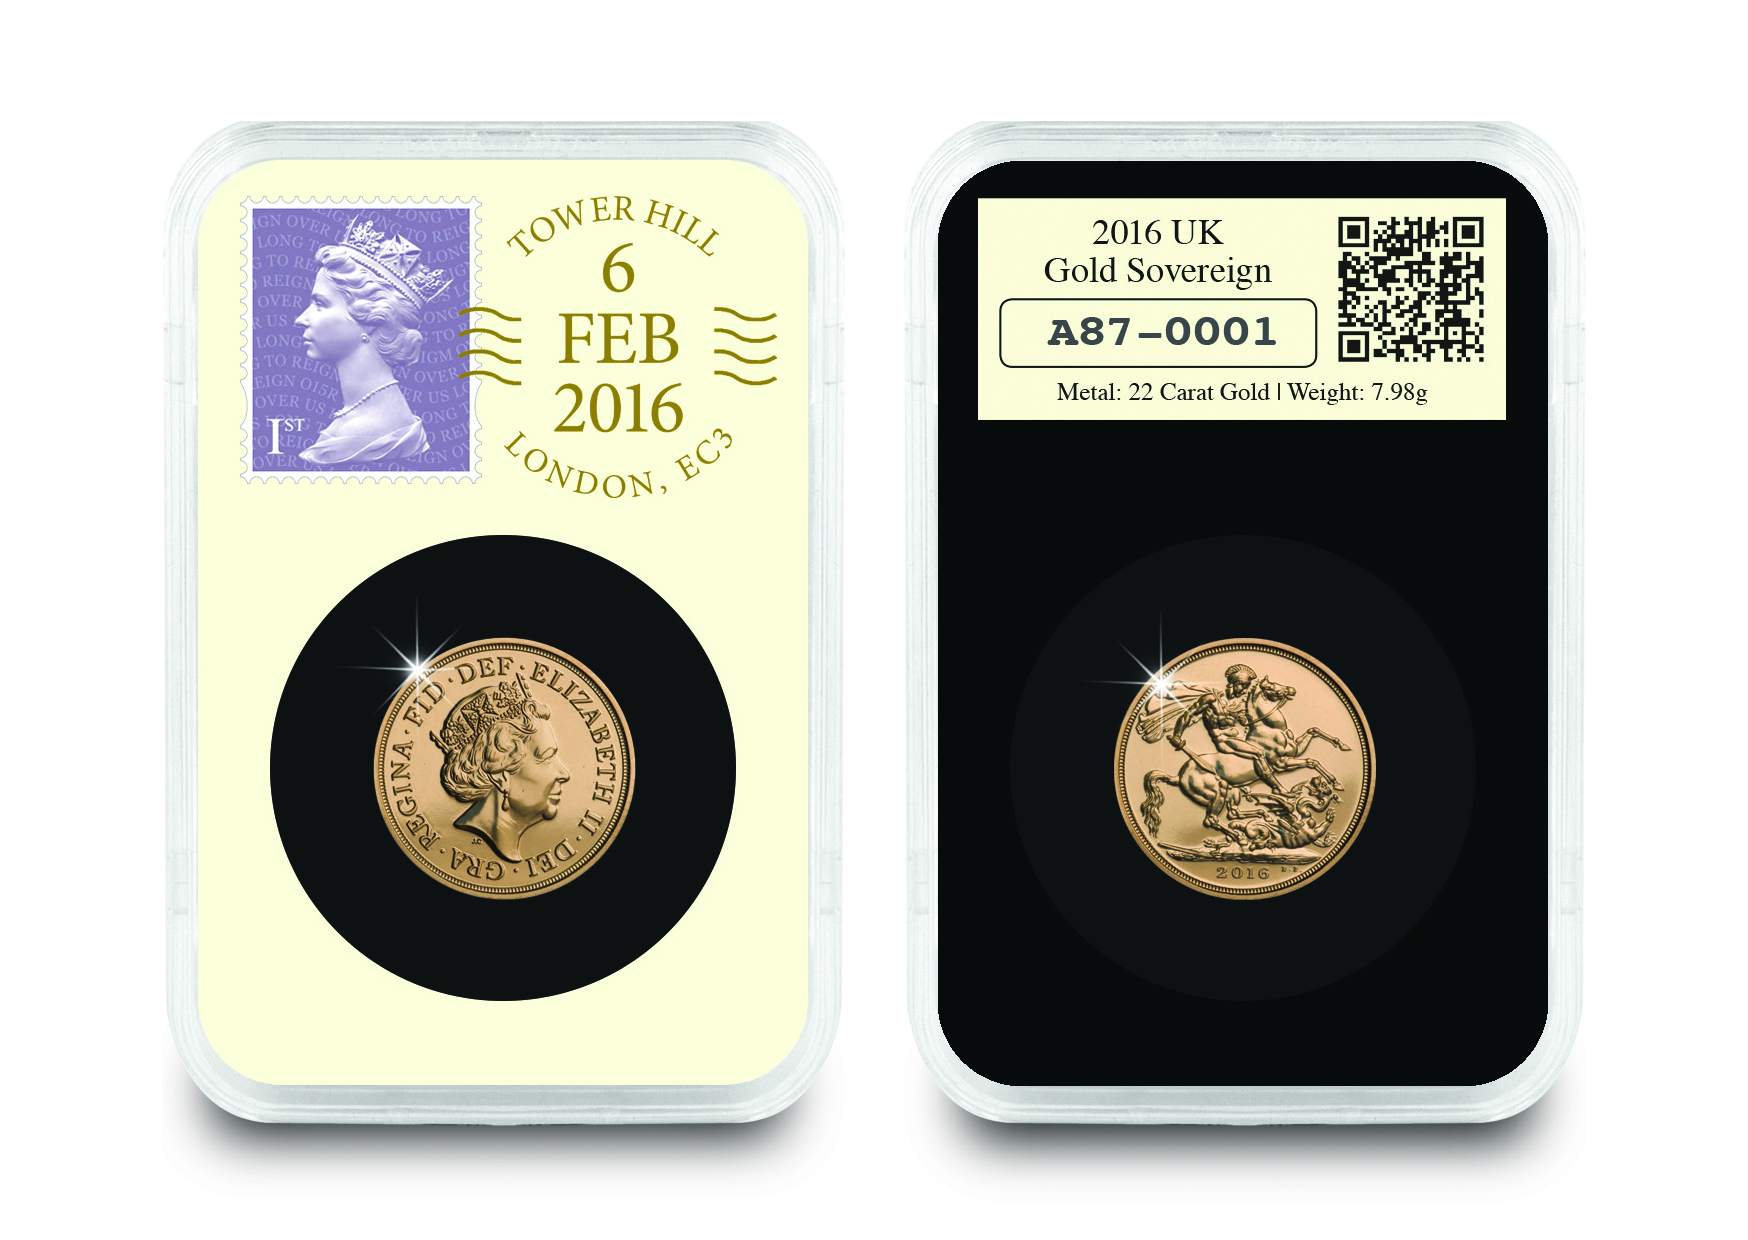 a6c 2016 gold sovereign 3 - Gold reaches 3-year high